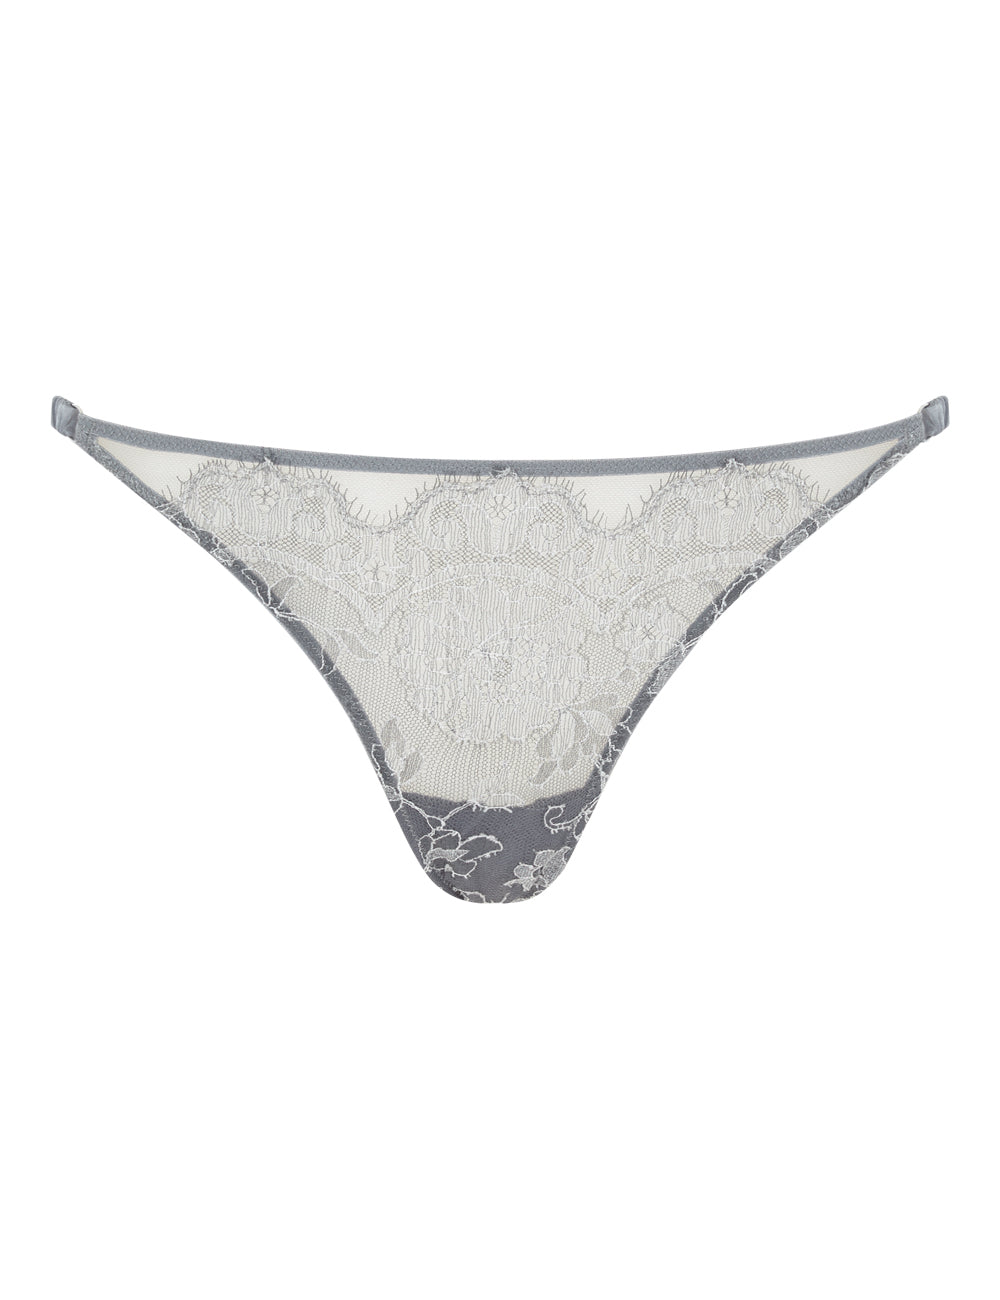 Pleat and Lace Thong Smoke